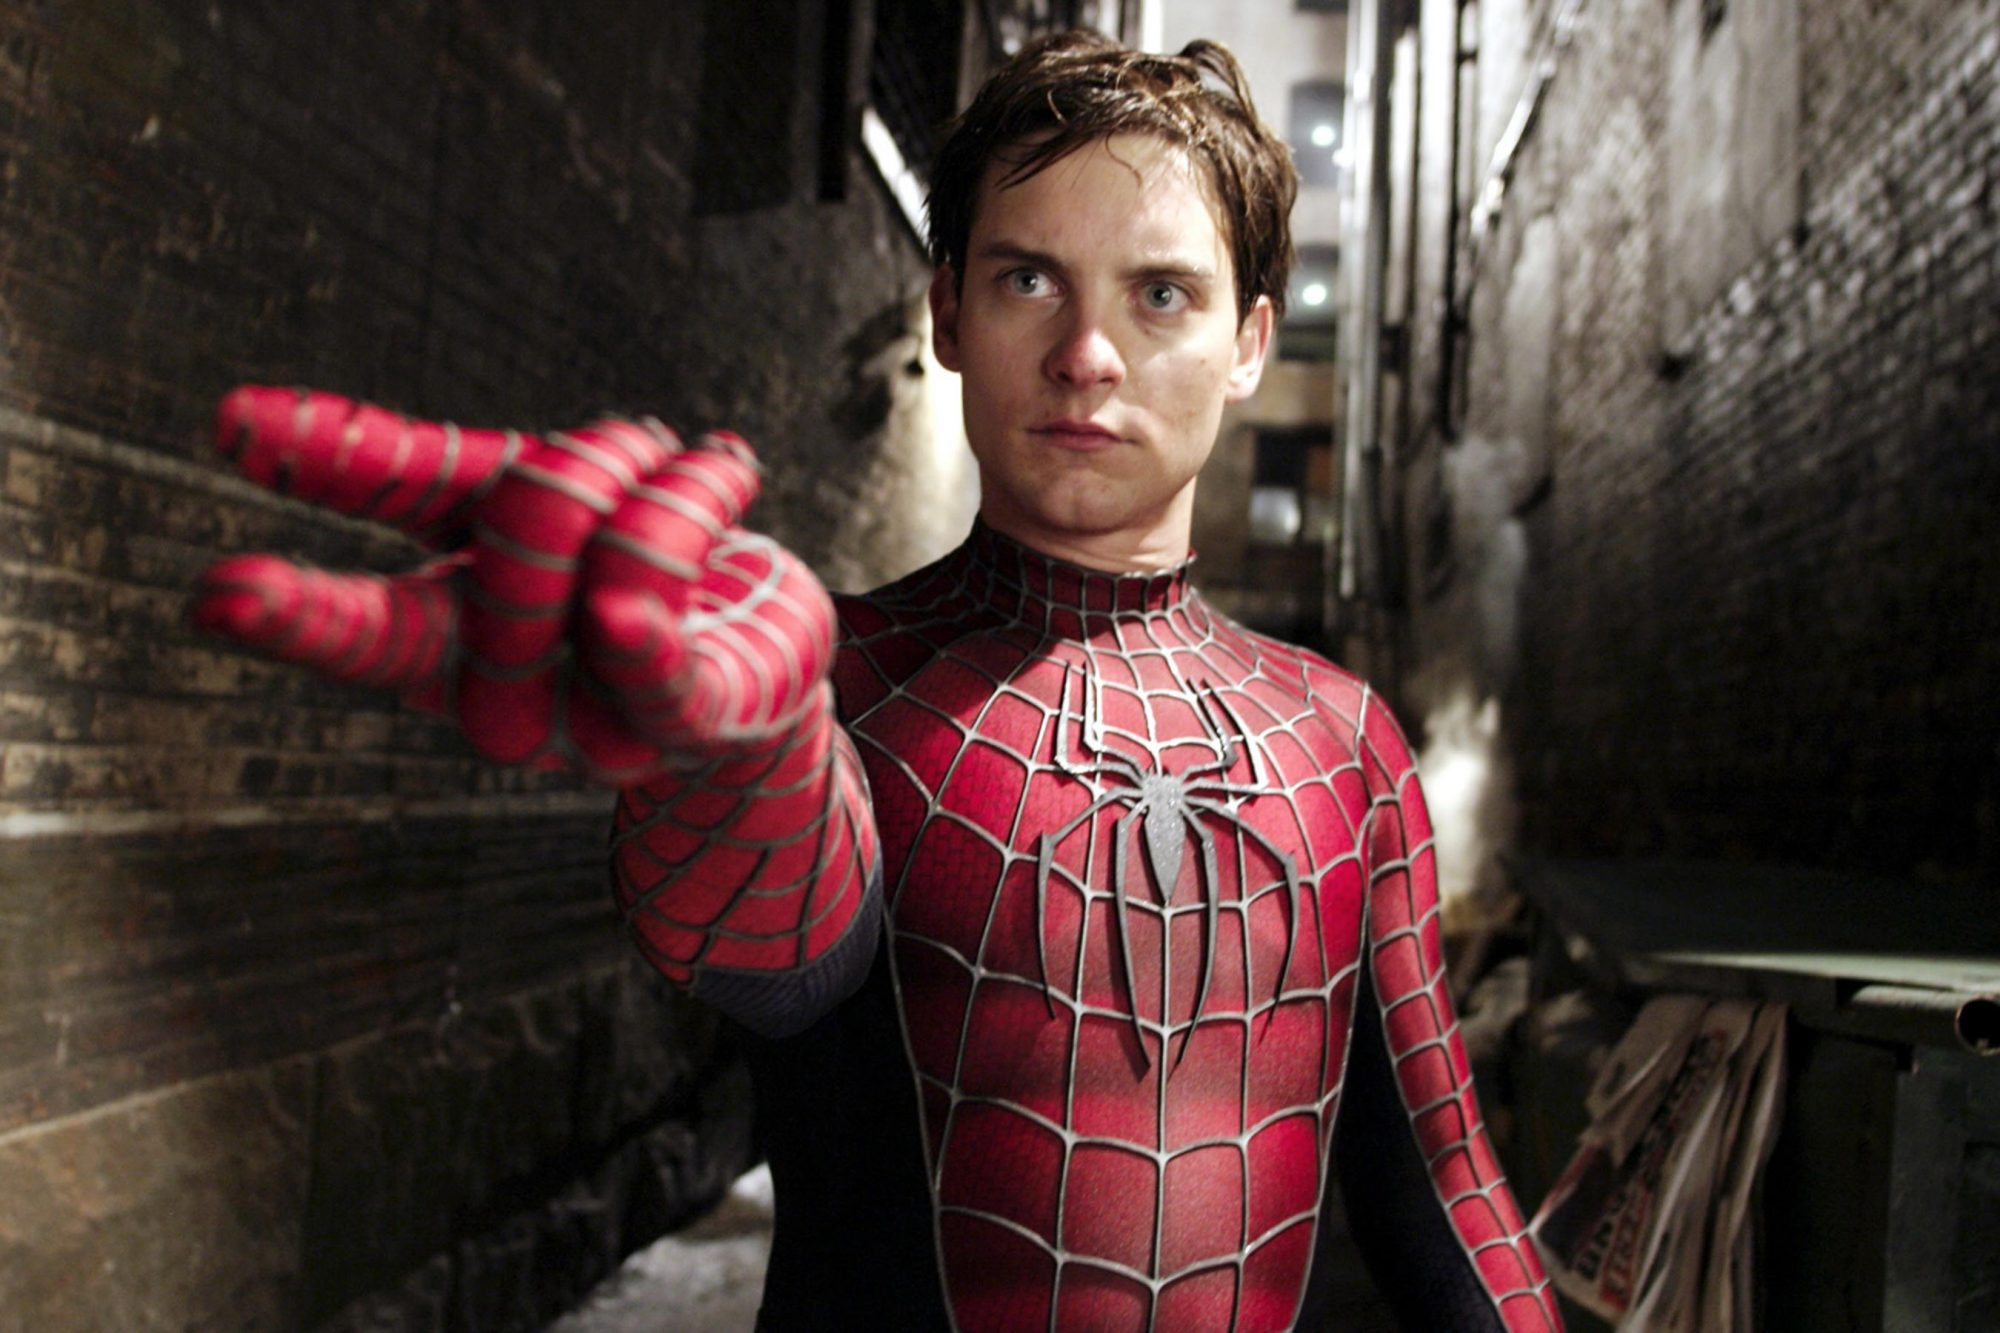 SPIDER-MAN 2, Tobey Maguire, 2004, (c) Columbia/courtesy Everett Collection